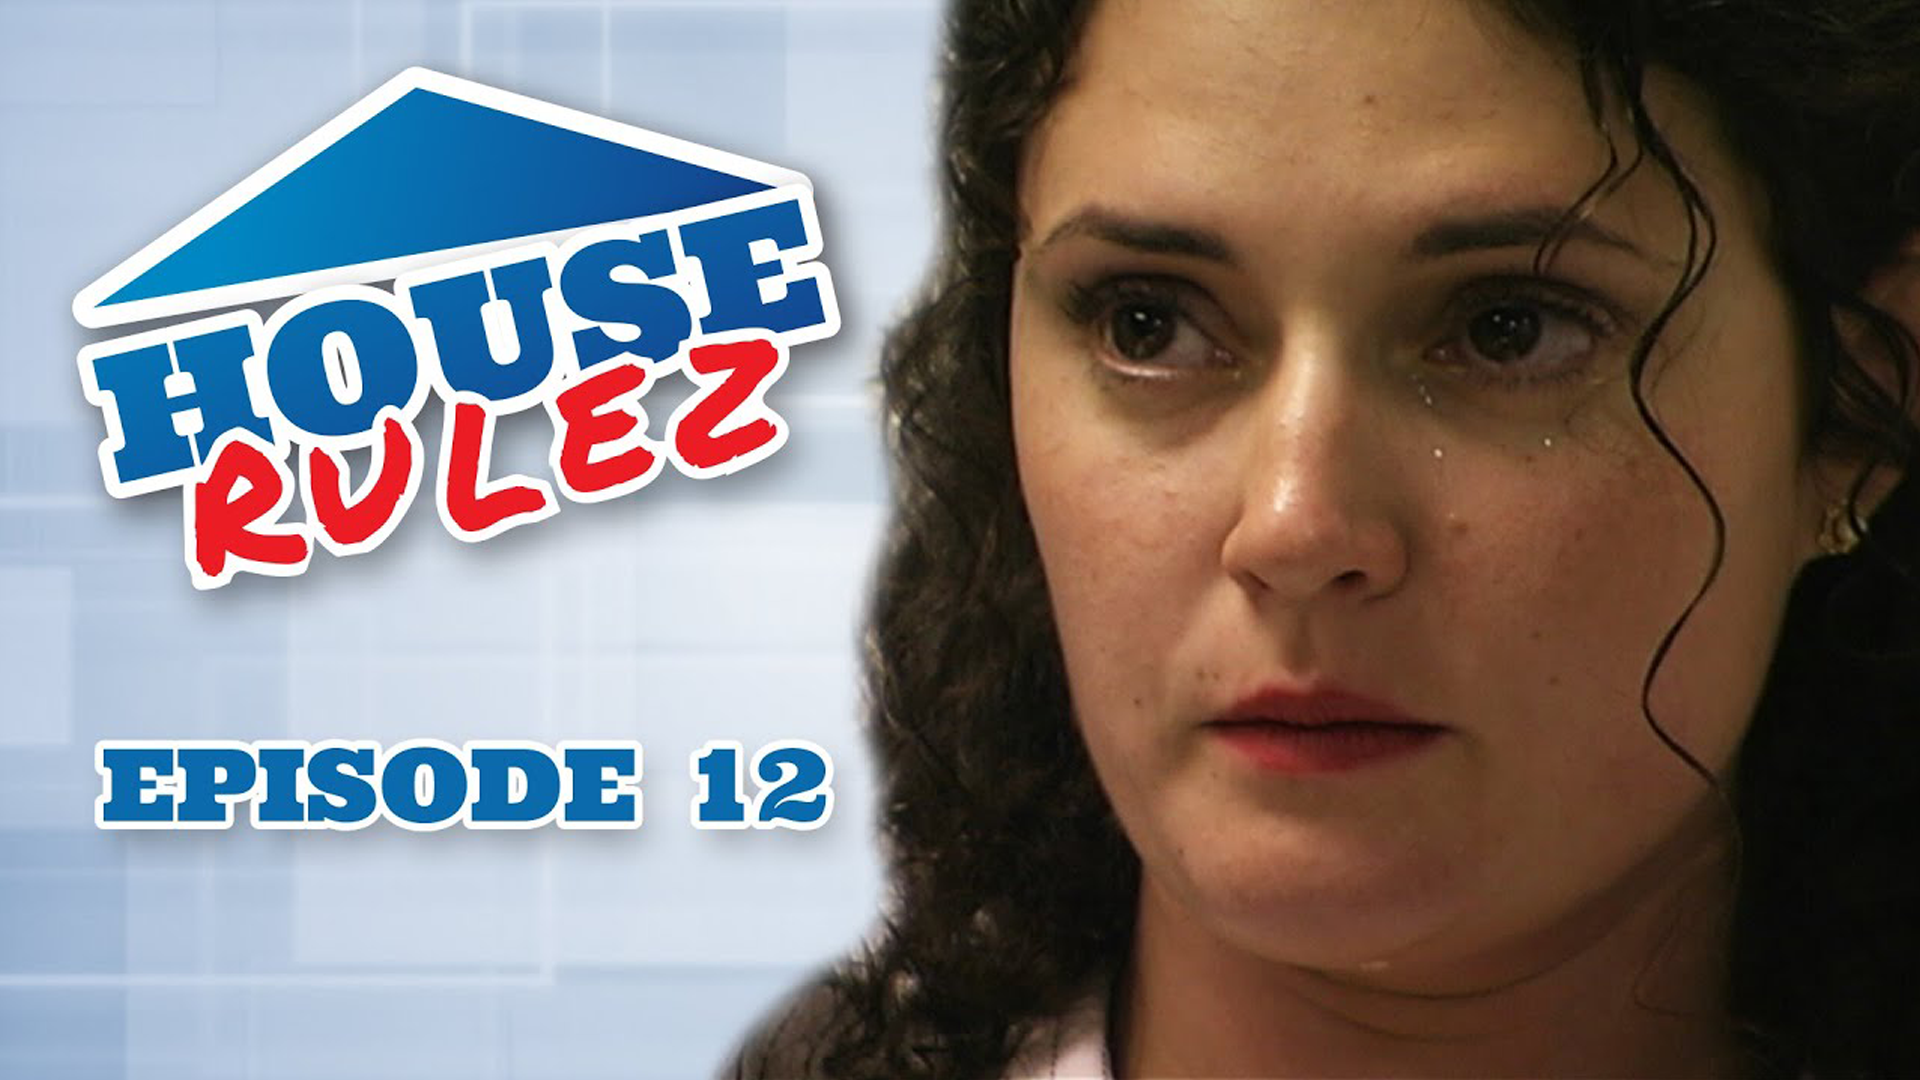 House Rulez Episode 12